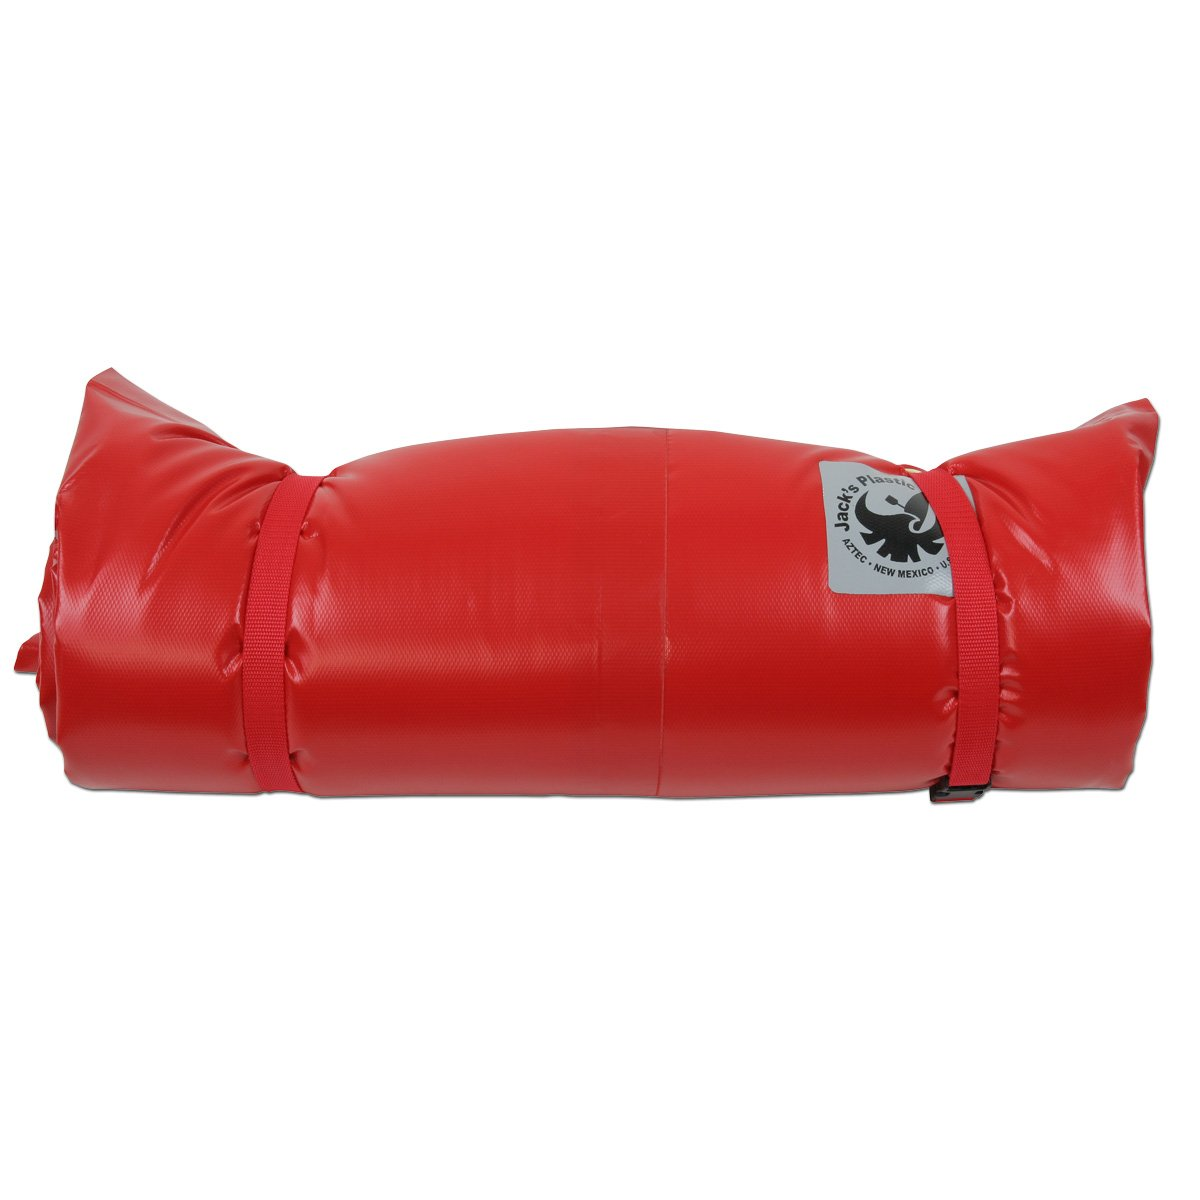 NRS Super Paco Pad Red, One Size